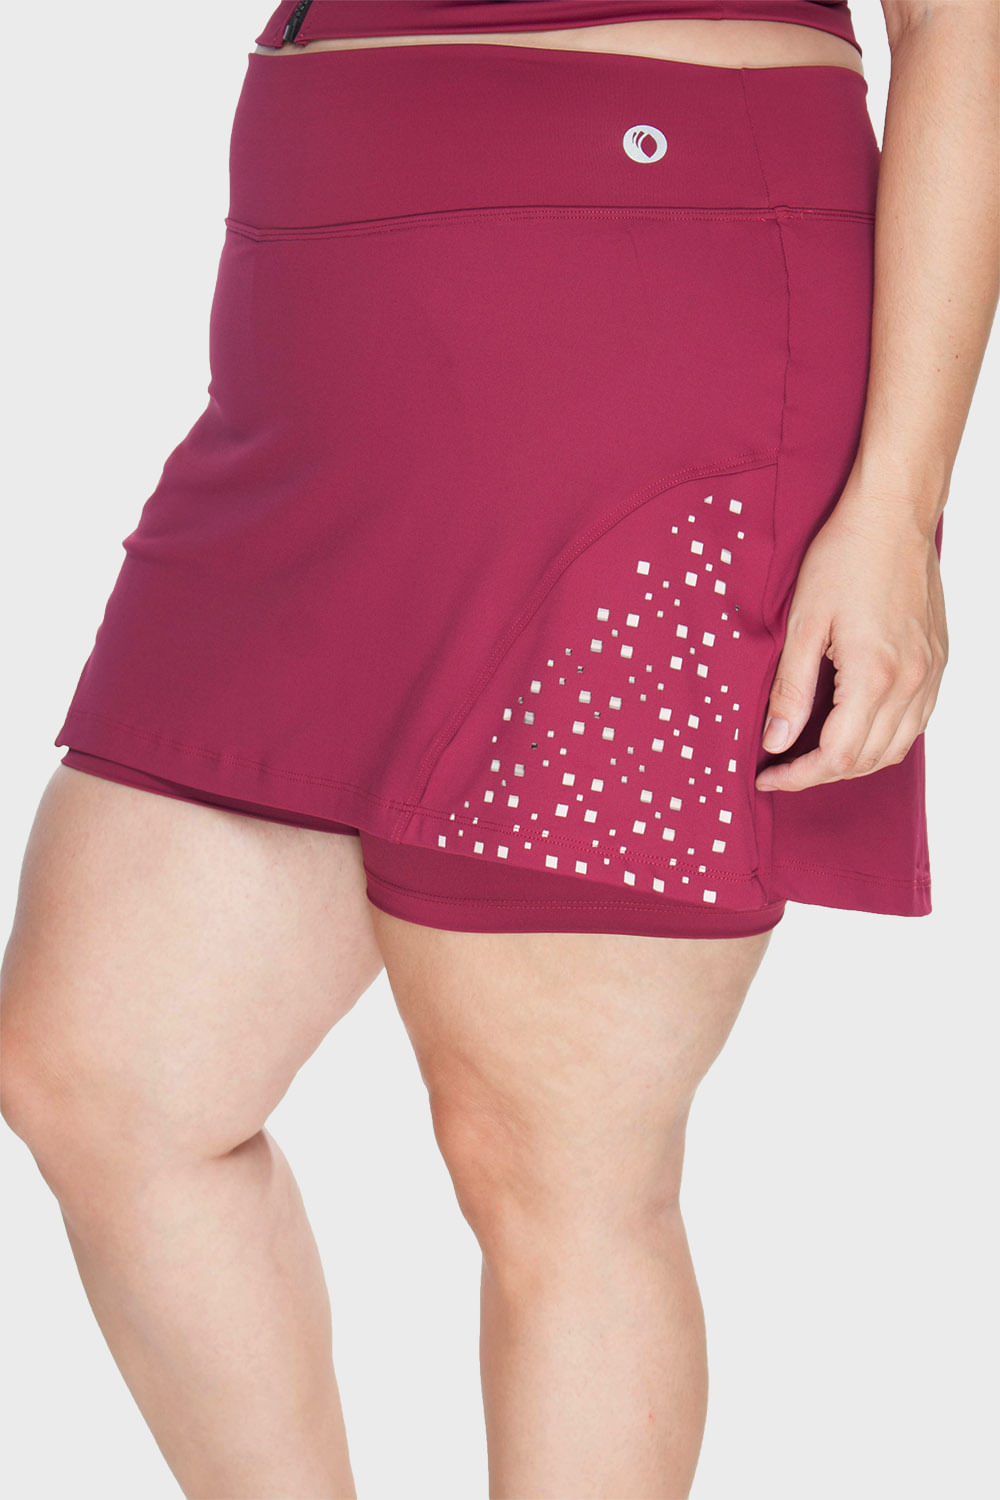 Short-Saia-Recorte-Laser-Plus-Size_T1